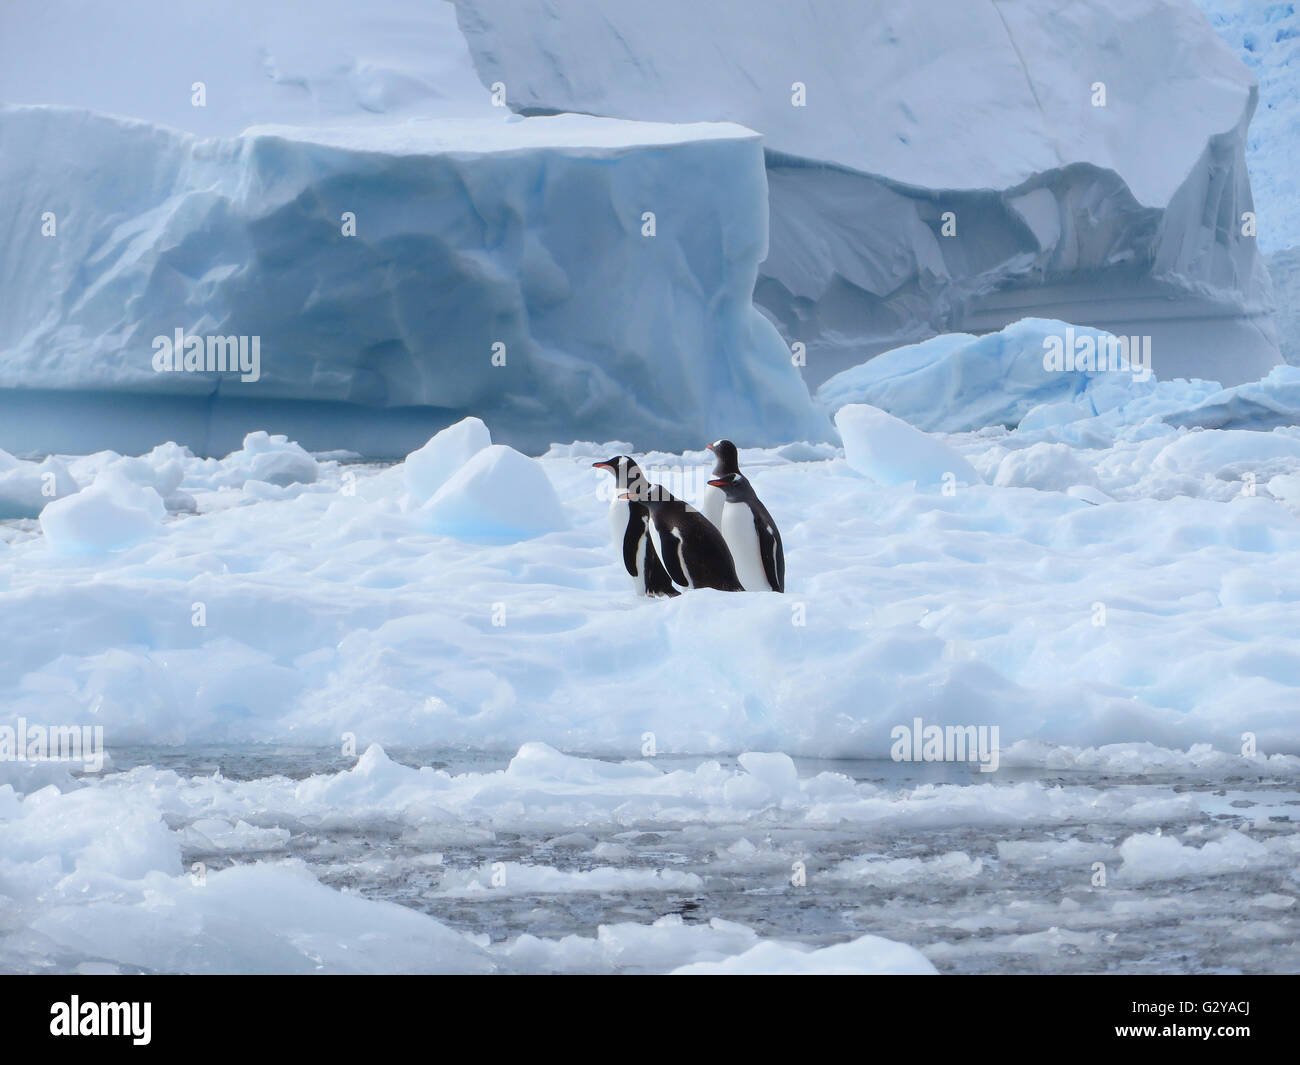 Four cute Gentoo penguins (Pygoscelis Papua) sitting together on sea ice, Antarctica - Stock Image